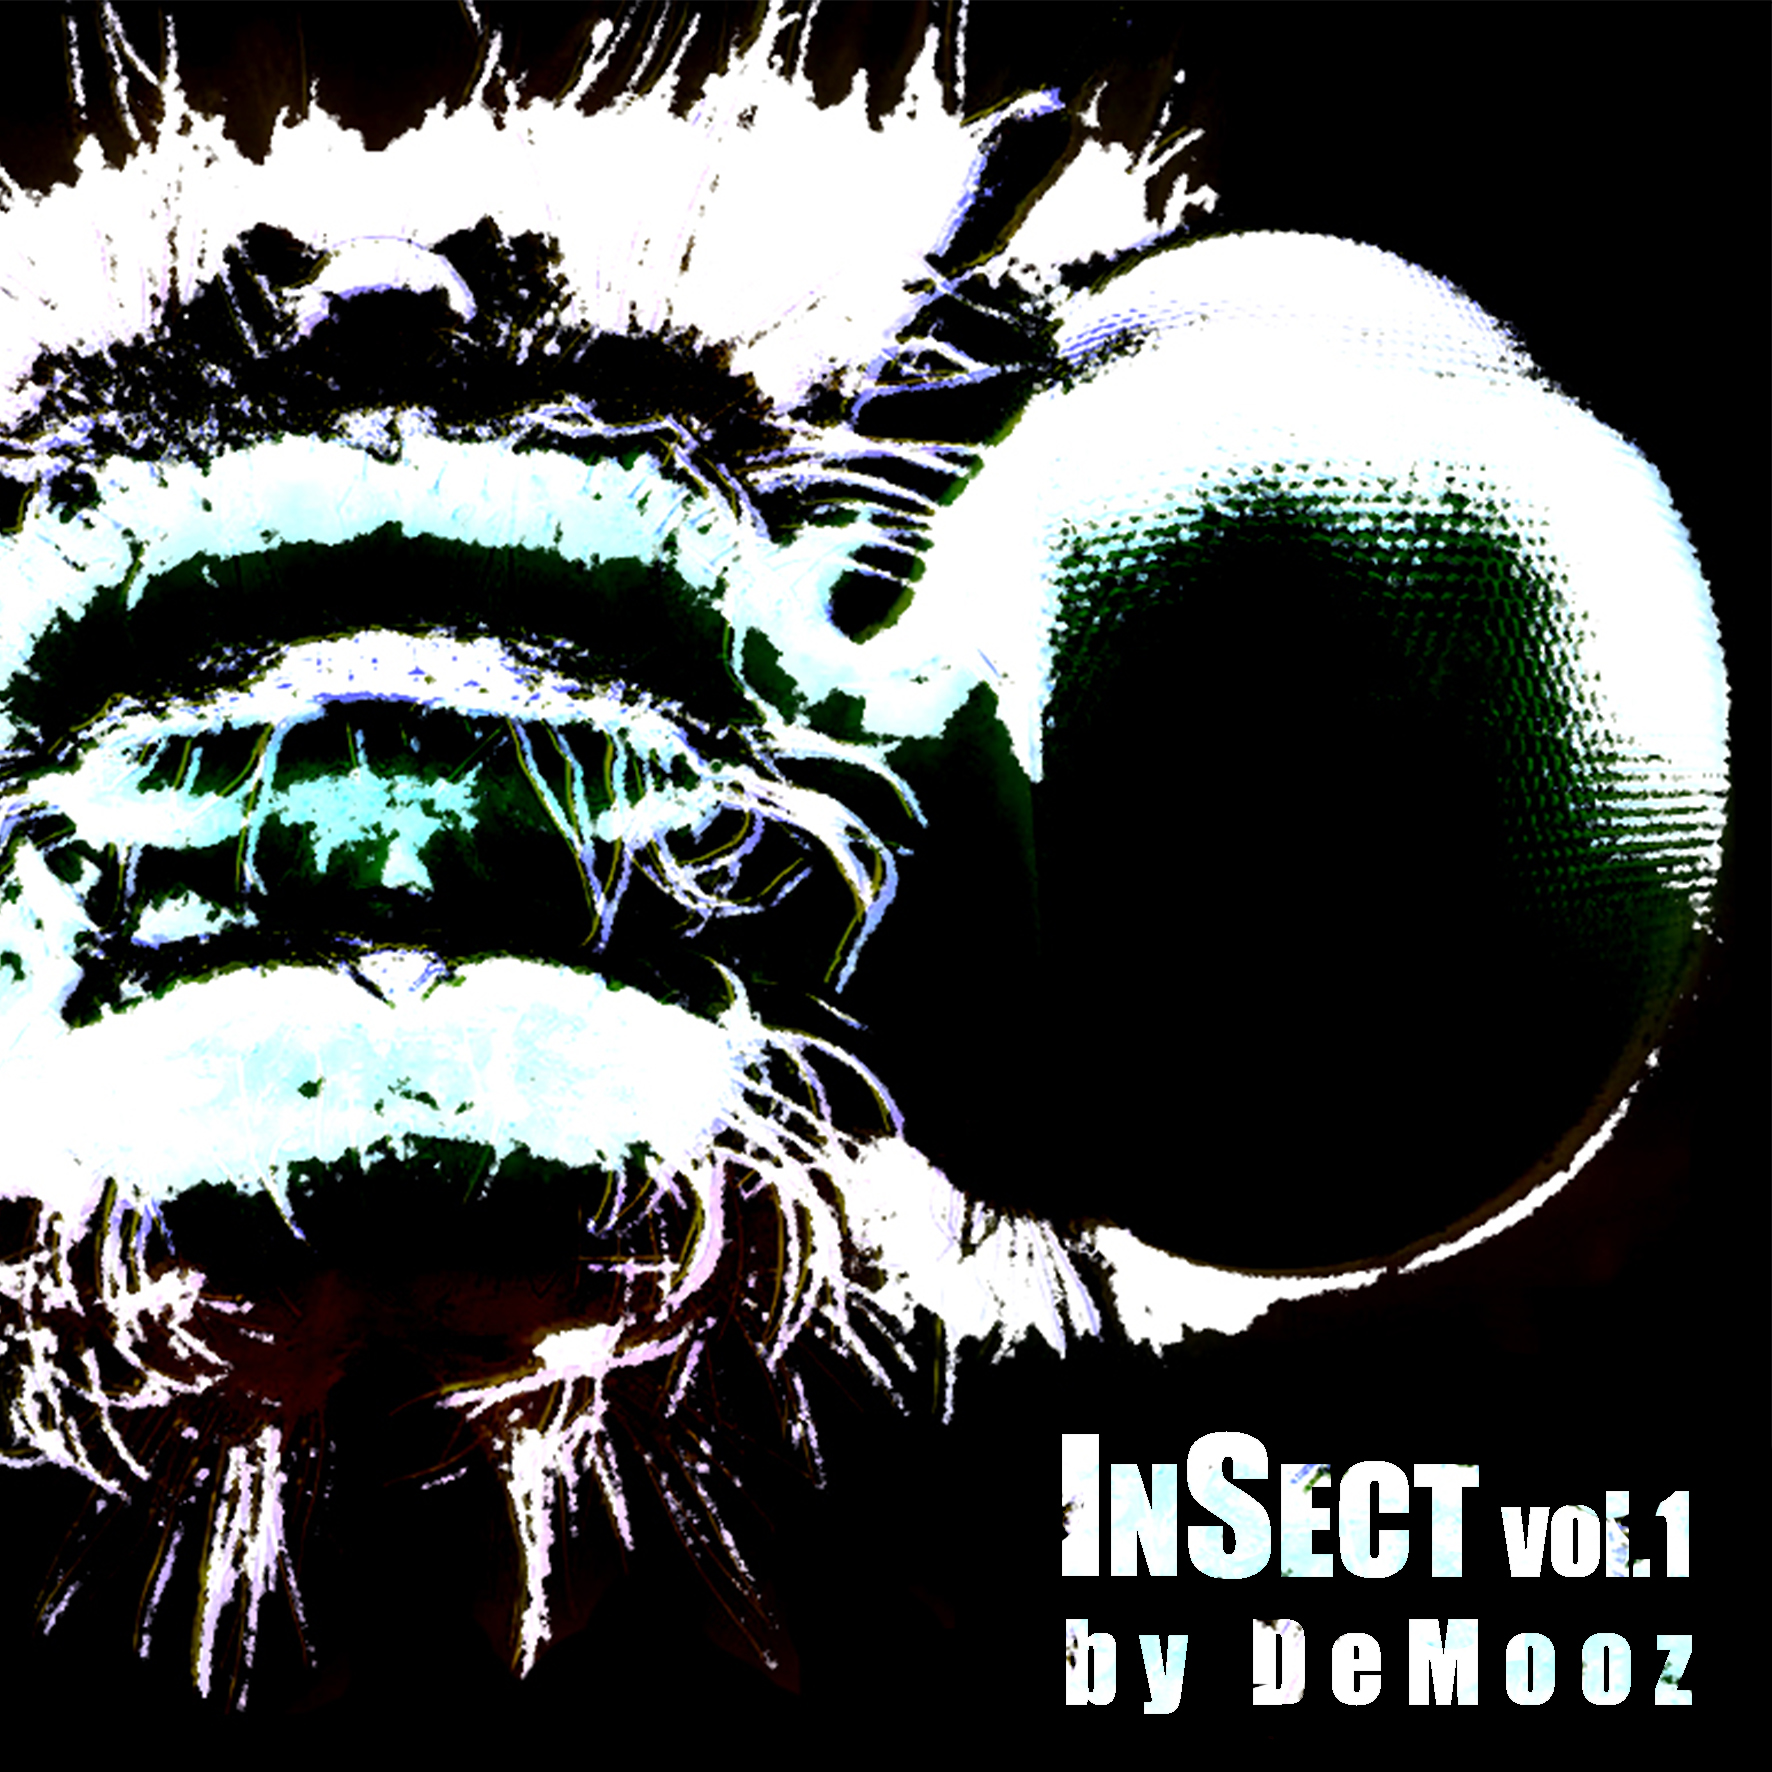 InSect vol.1 by DeMooz